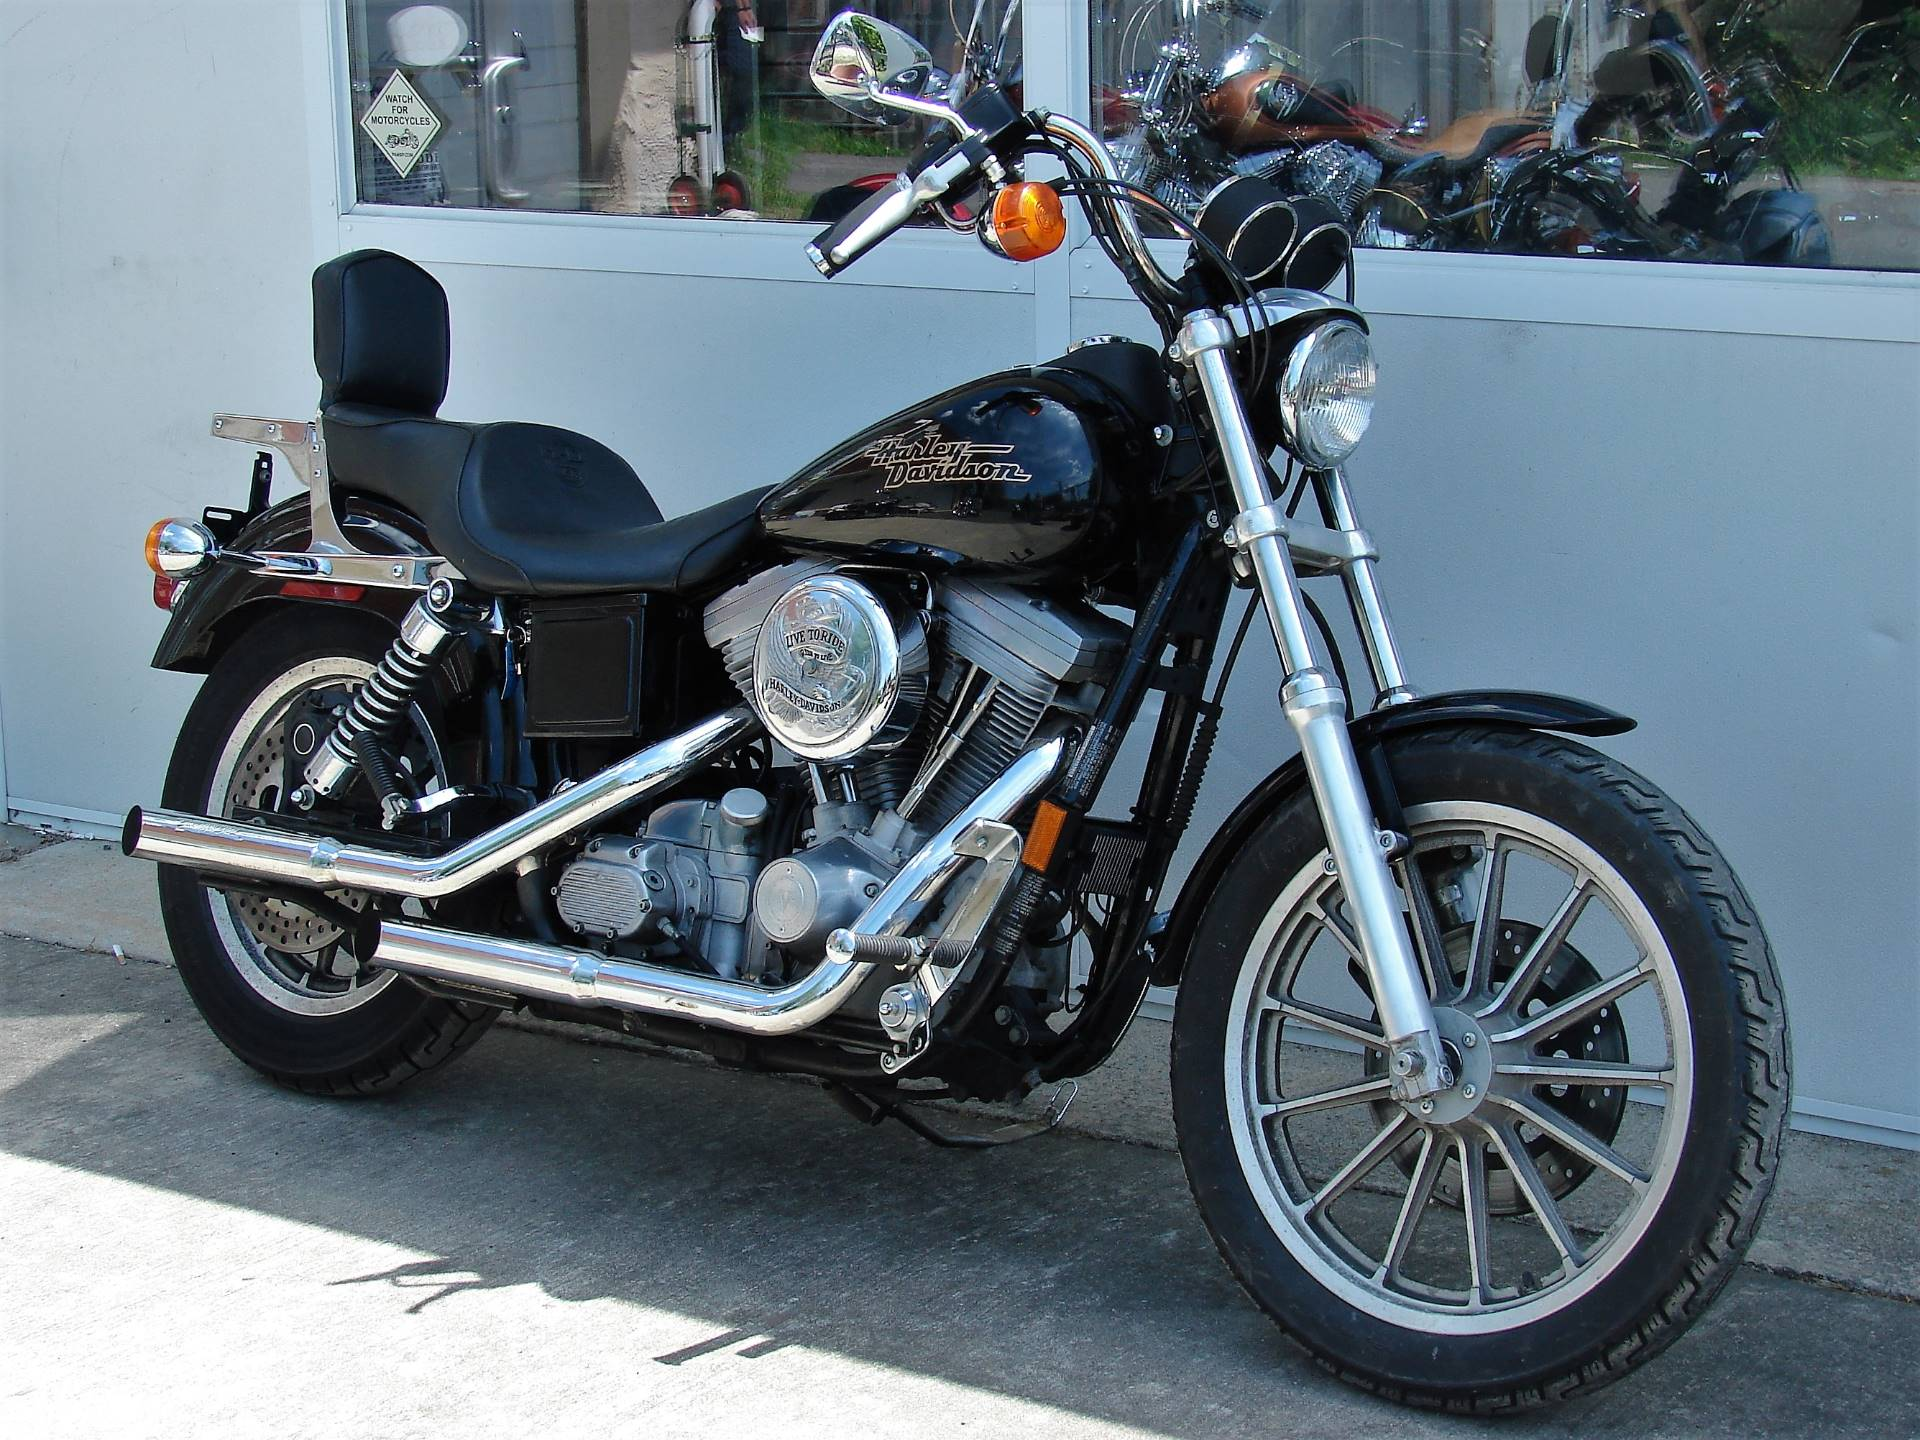 1998 Harley-Davidson Dyna Super Glide  (Black)  w/ Low Miles! in Williamstown, New Jersey - Photo 4